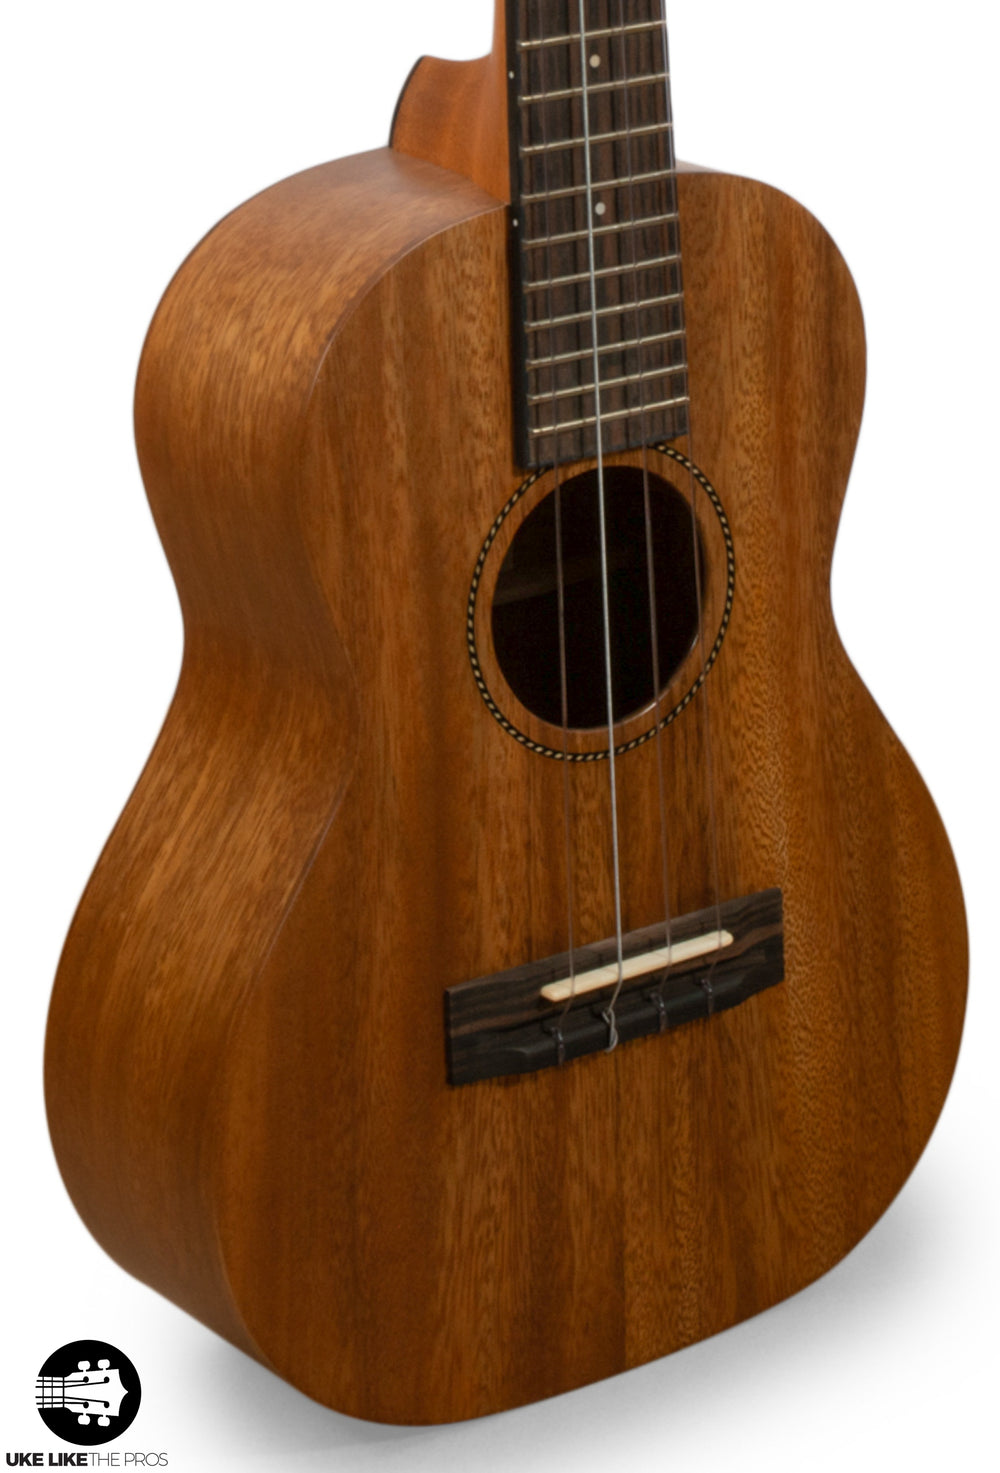 "Pono AT Solid Acacia Tenor Ukulele ""Kalena"" 2 Strap Buttons + Custom Set Up"